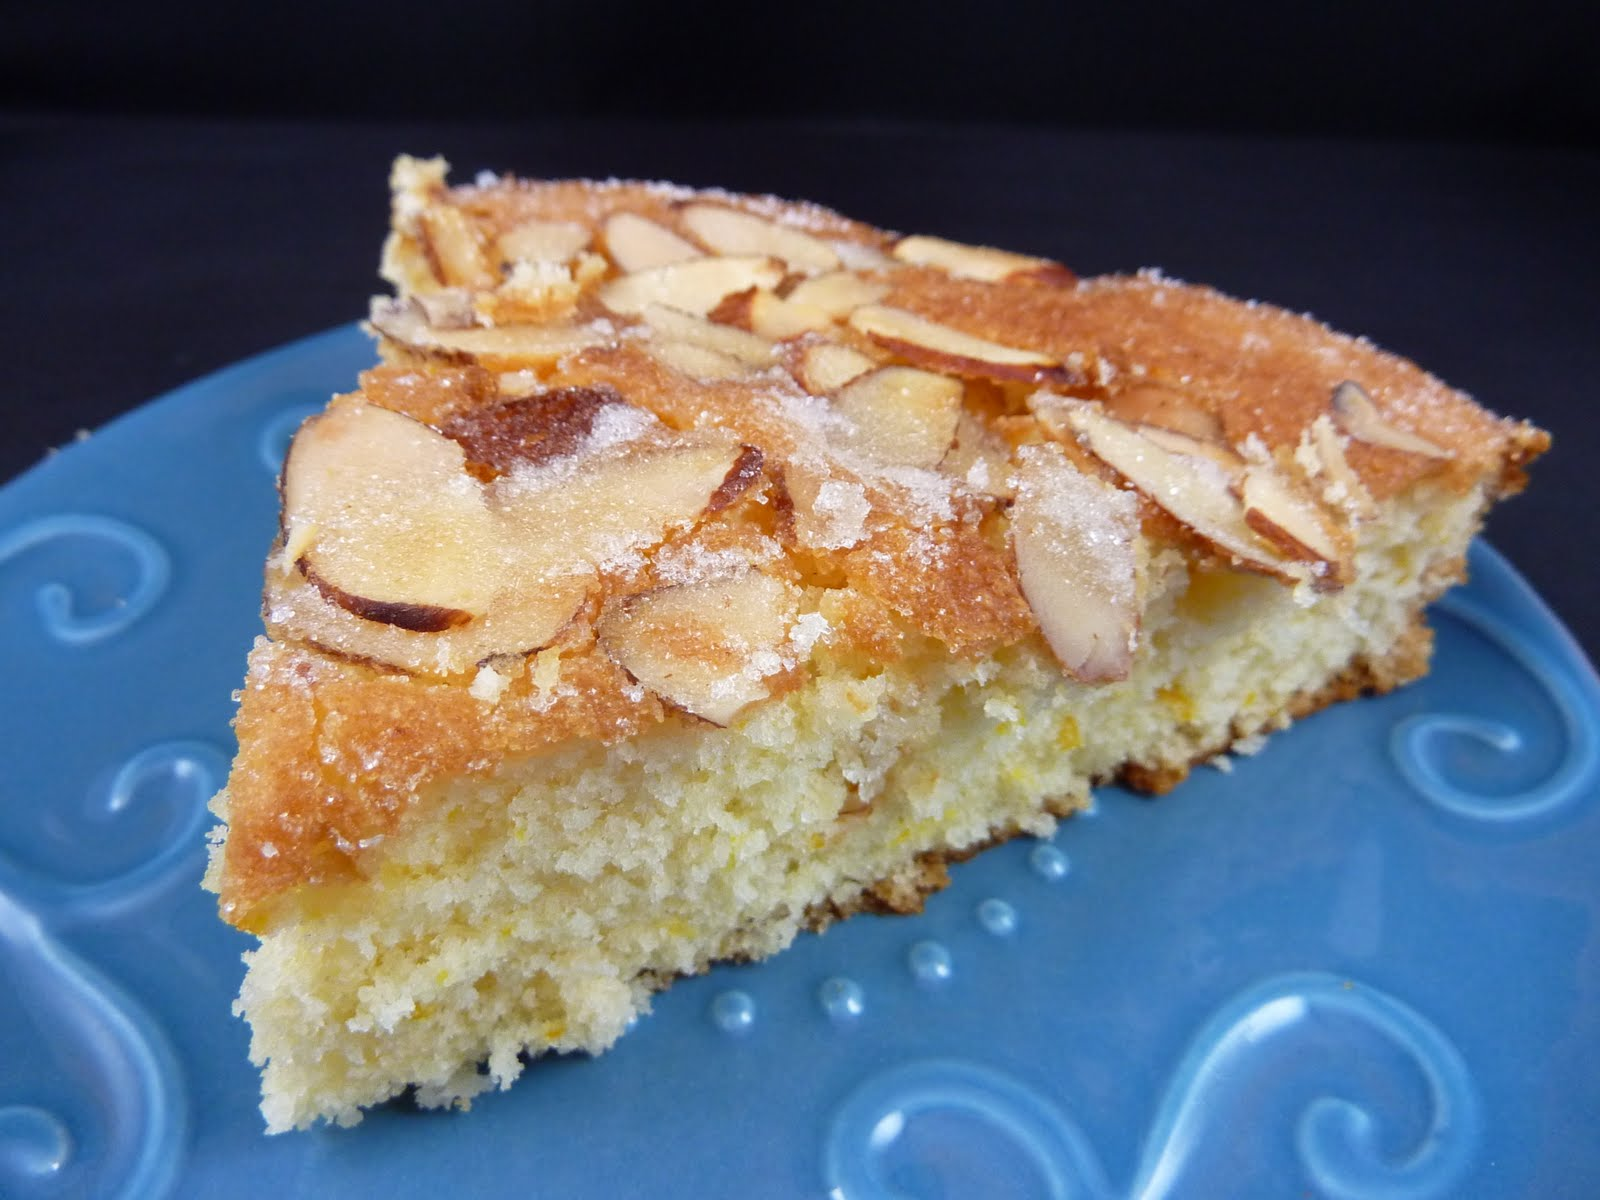 Cookies on Friday: Orange Almond Cake